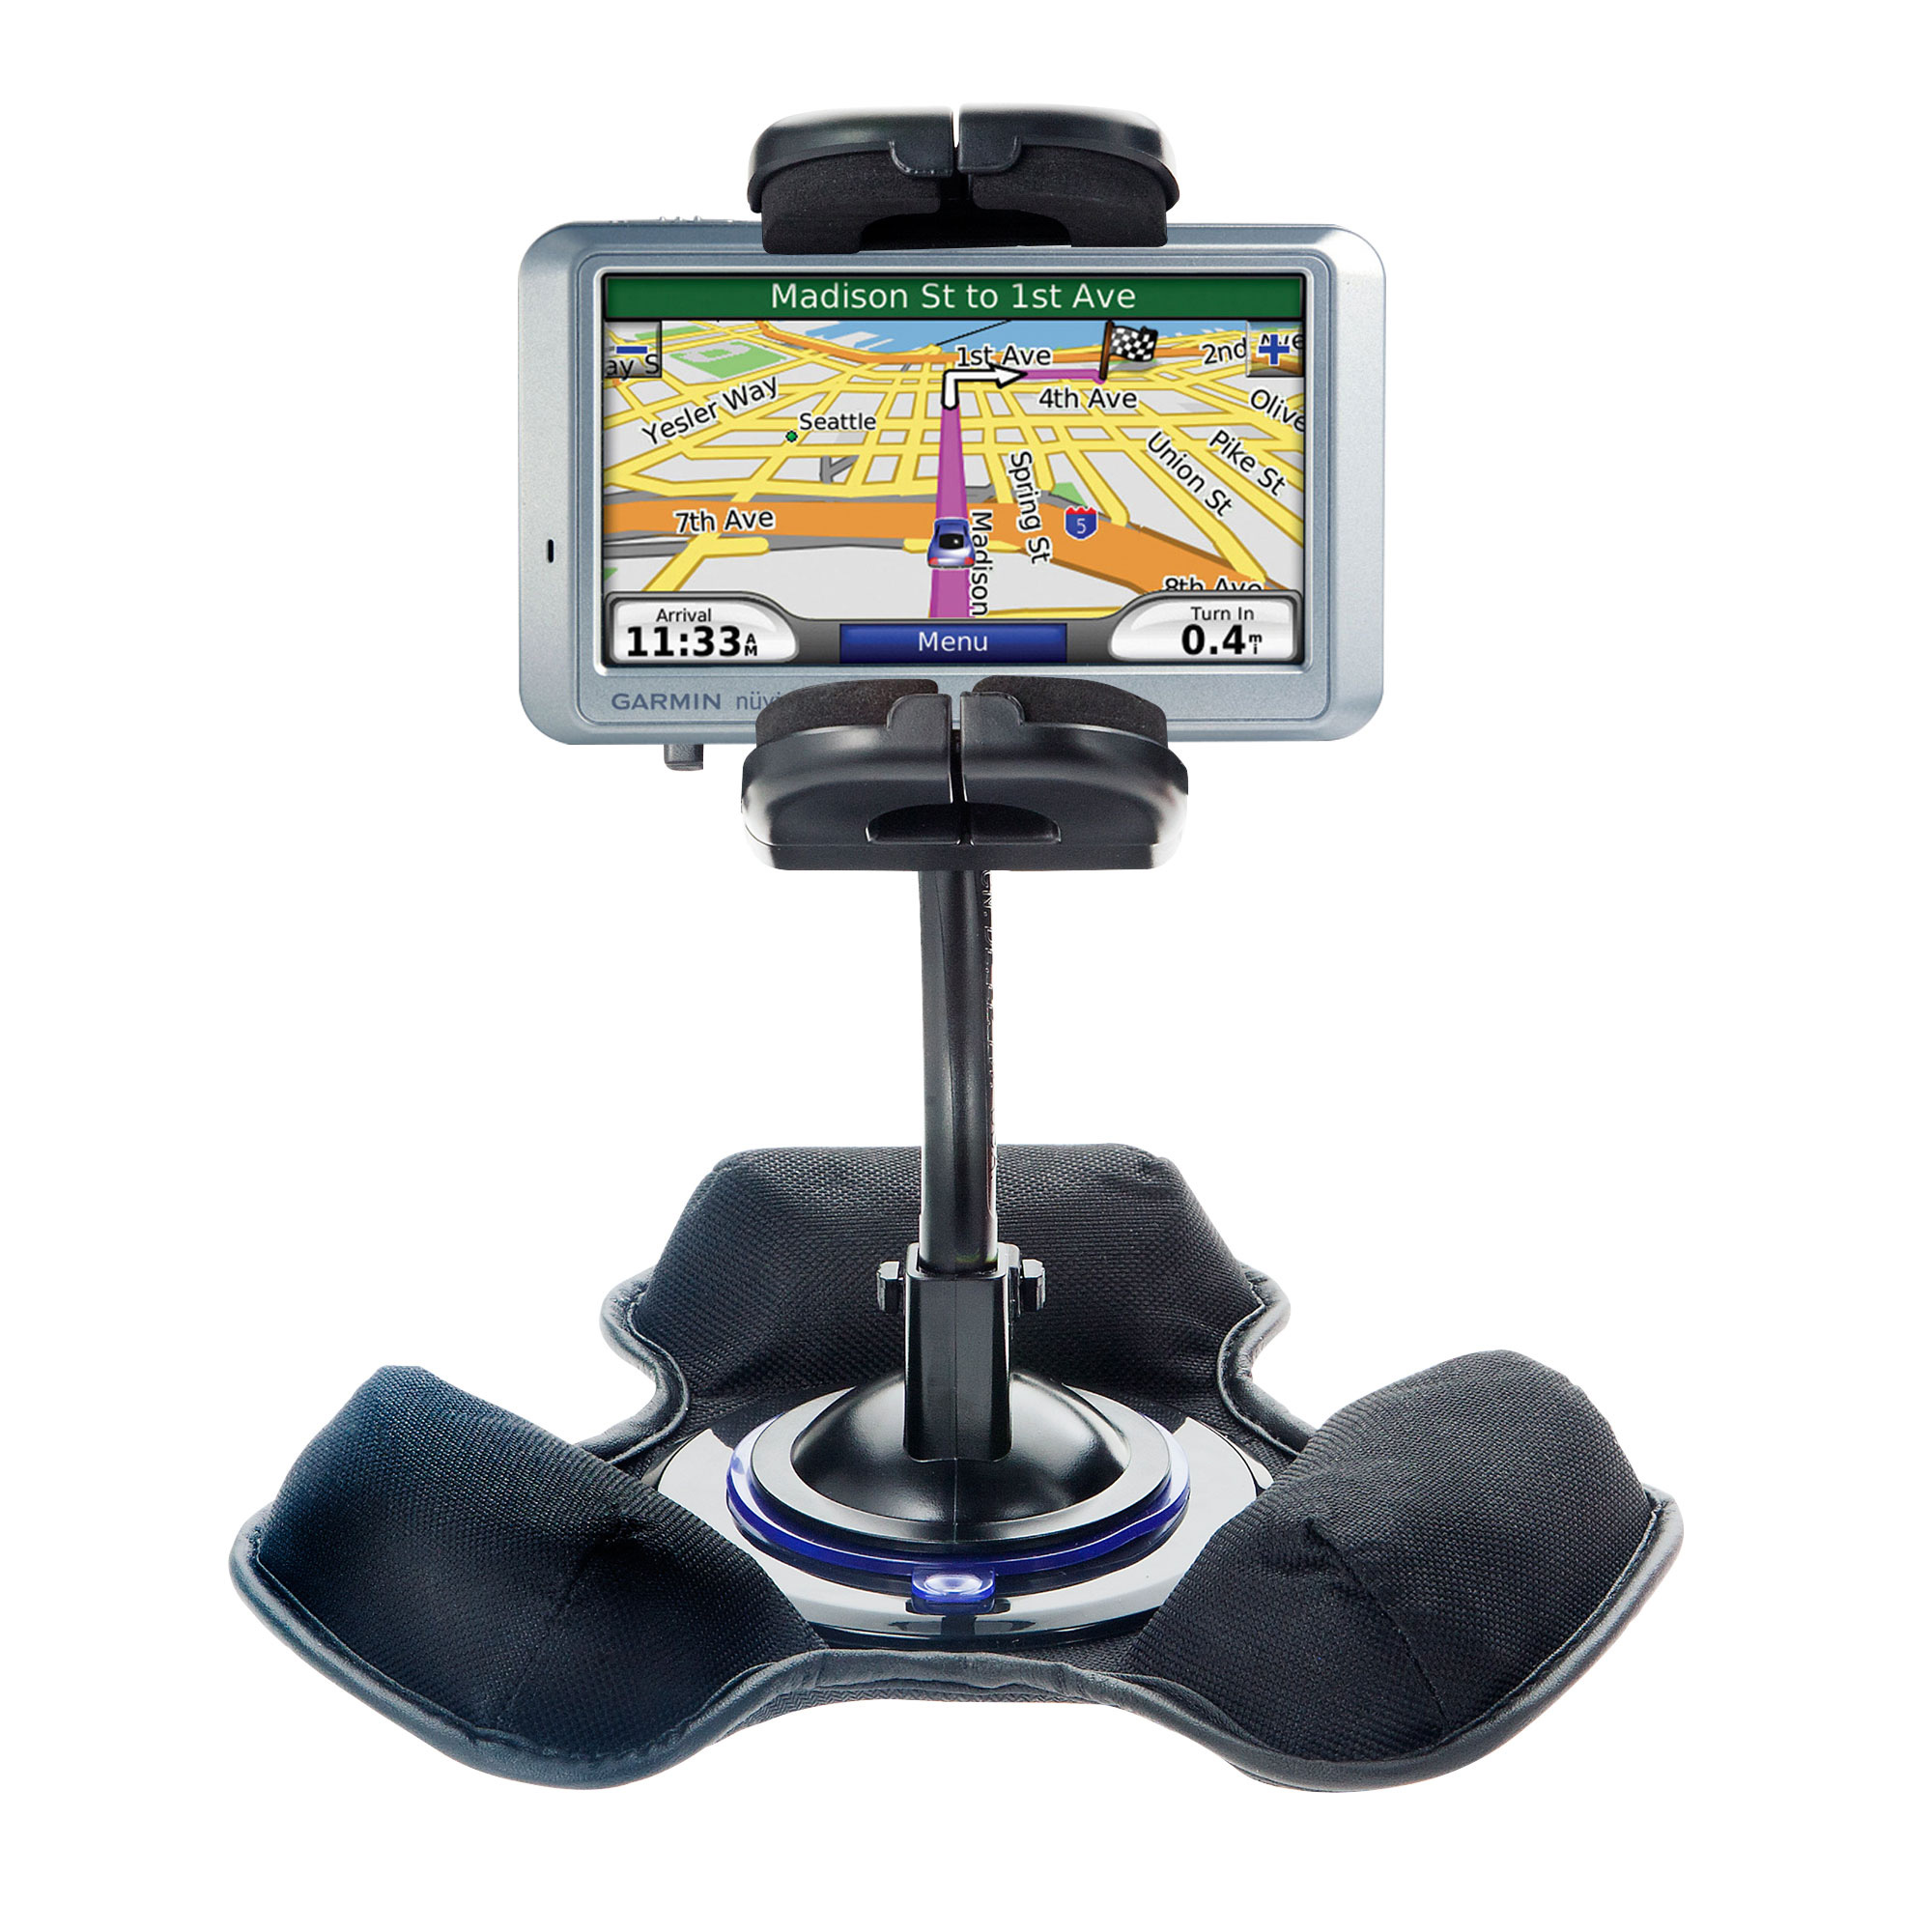 Dash and Windshield Holder compatible with the Garmin Nuvi 755T